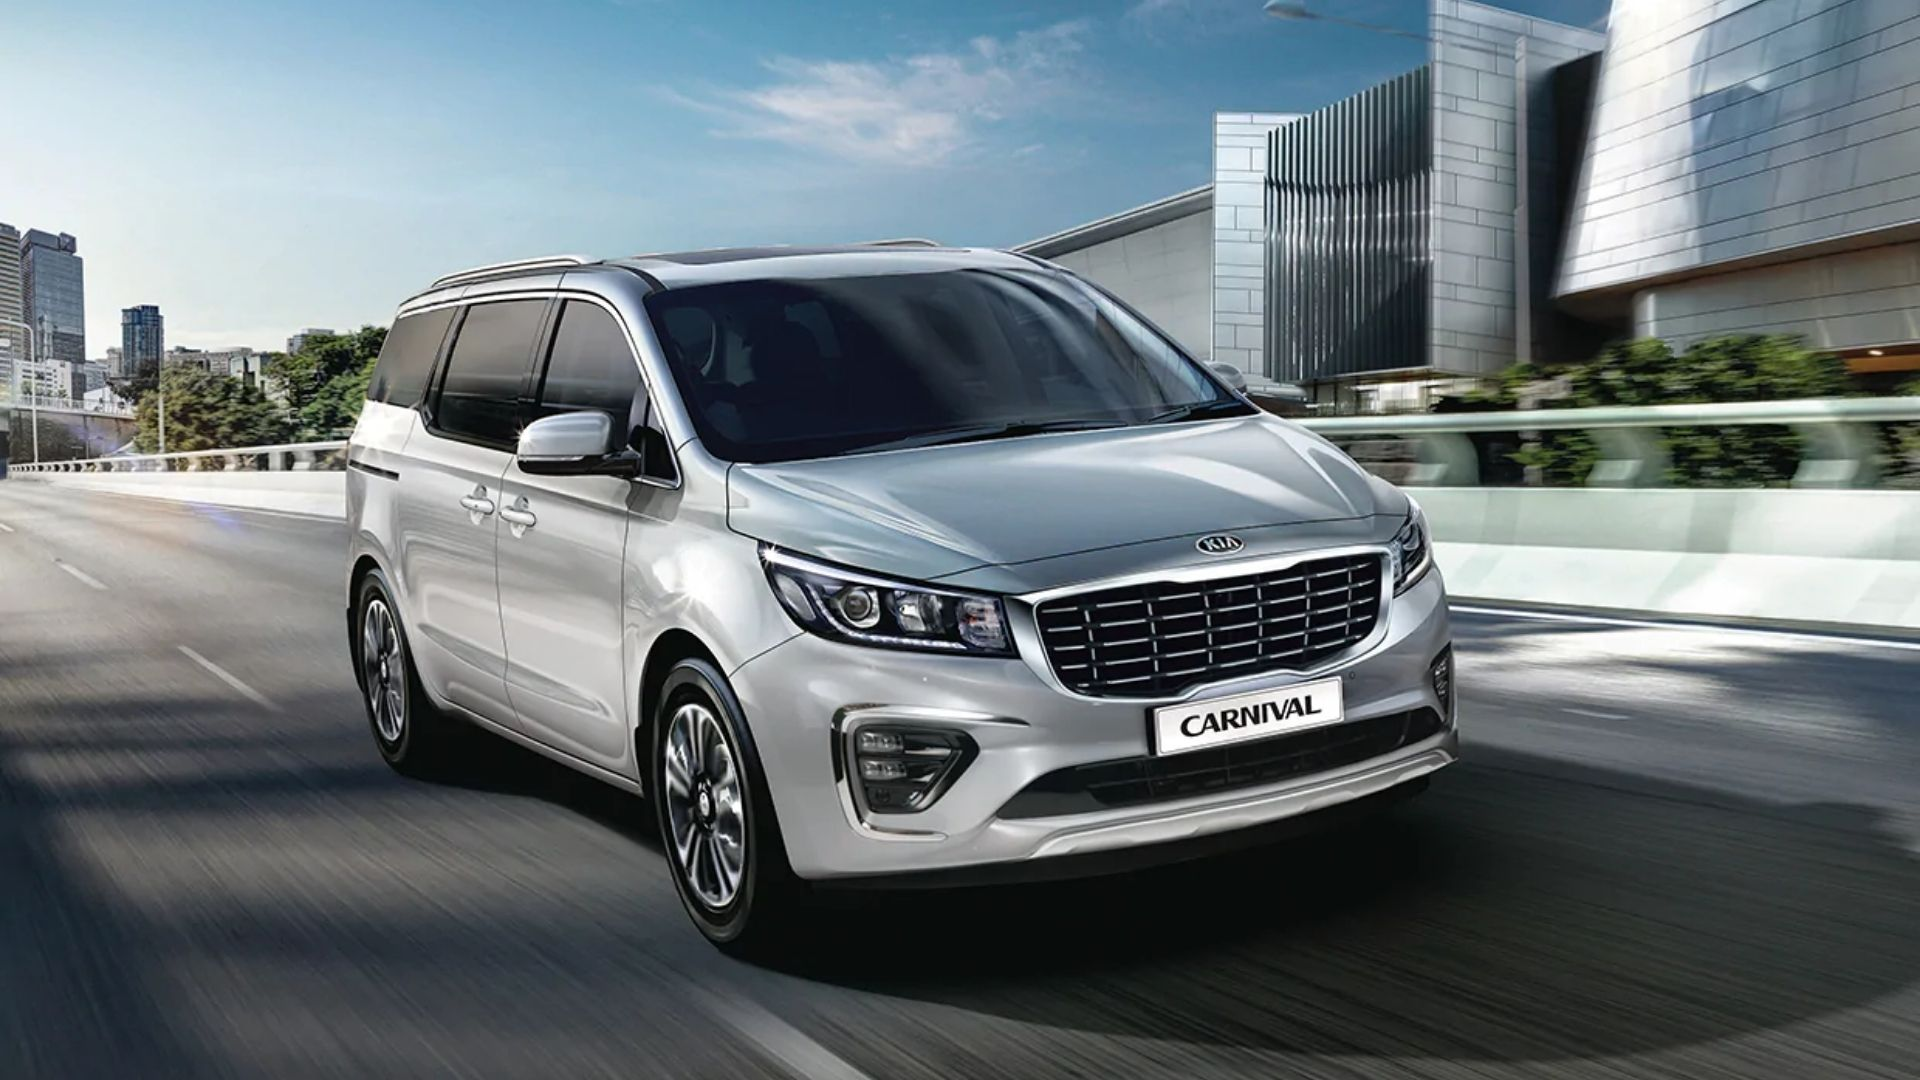 Kia Carnival Exterior Features